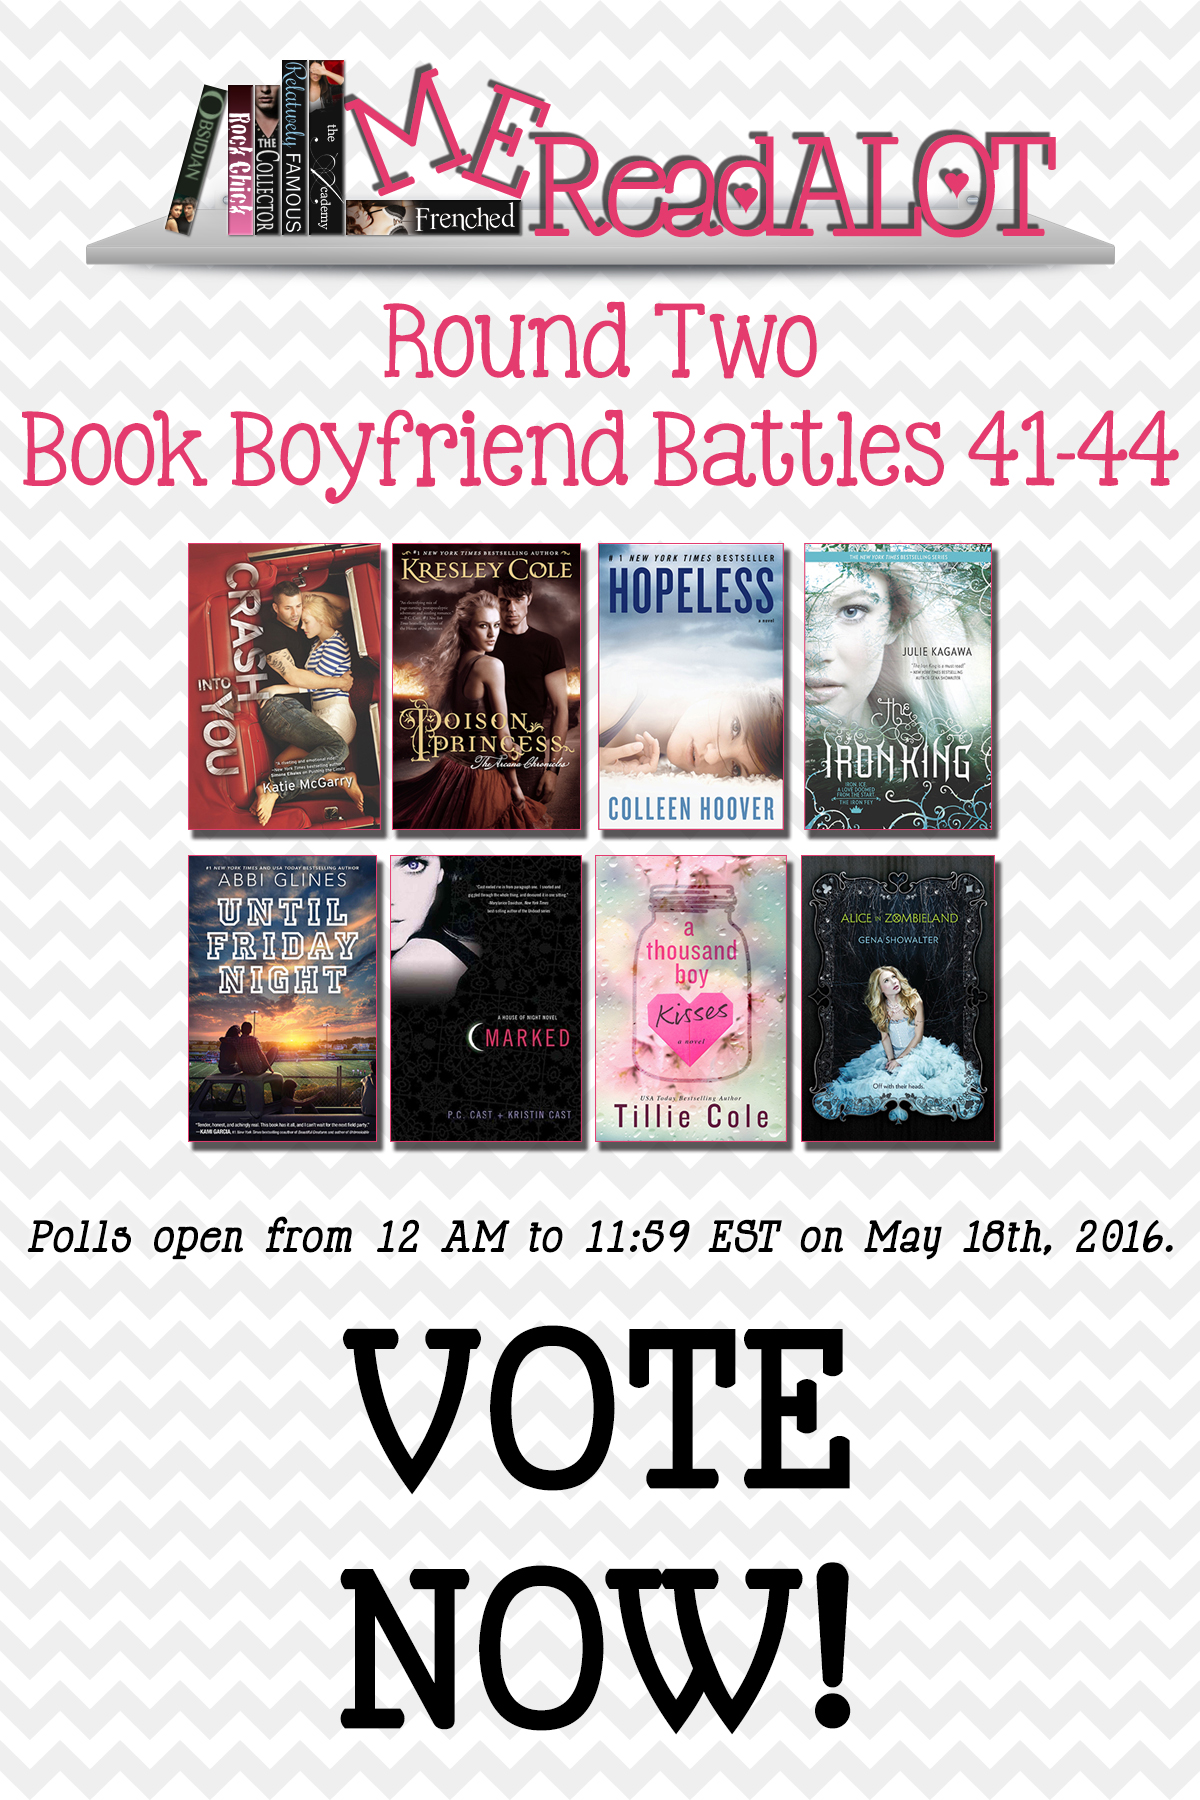 Book Boyfriend Battles 41-44